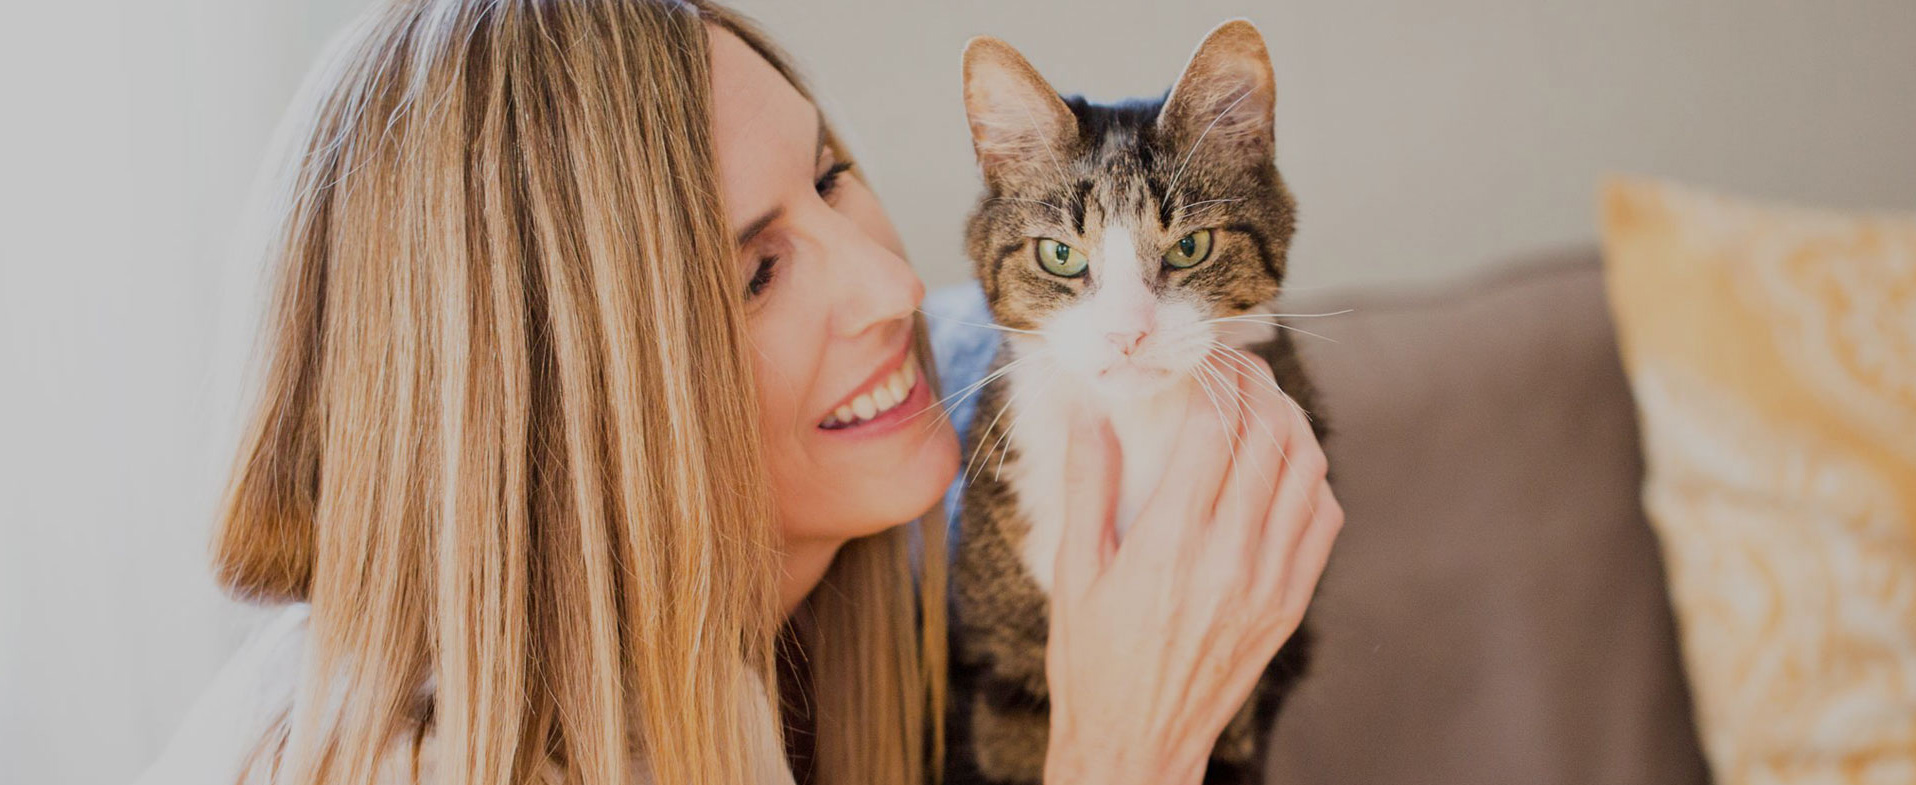 Helping Pets Fight Cancer